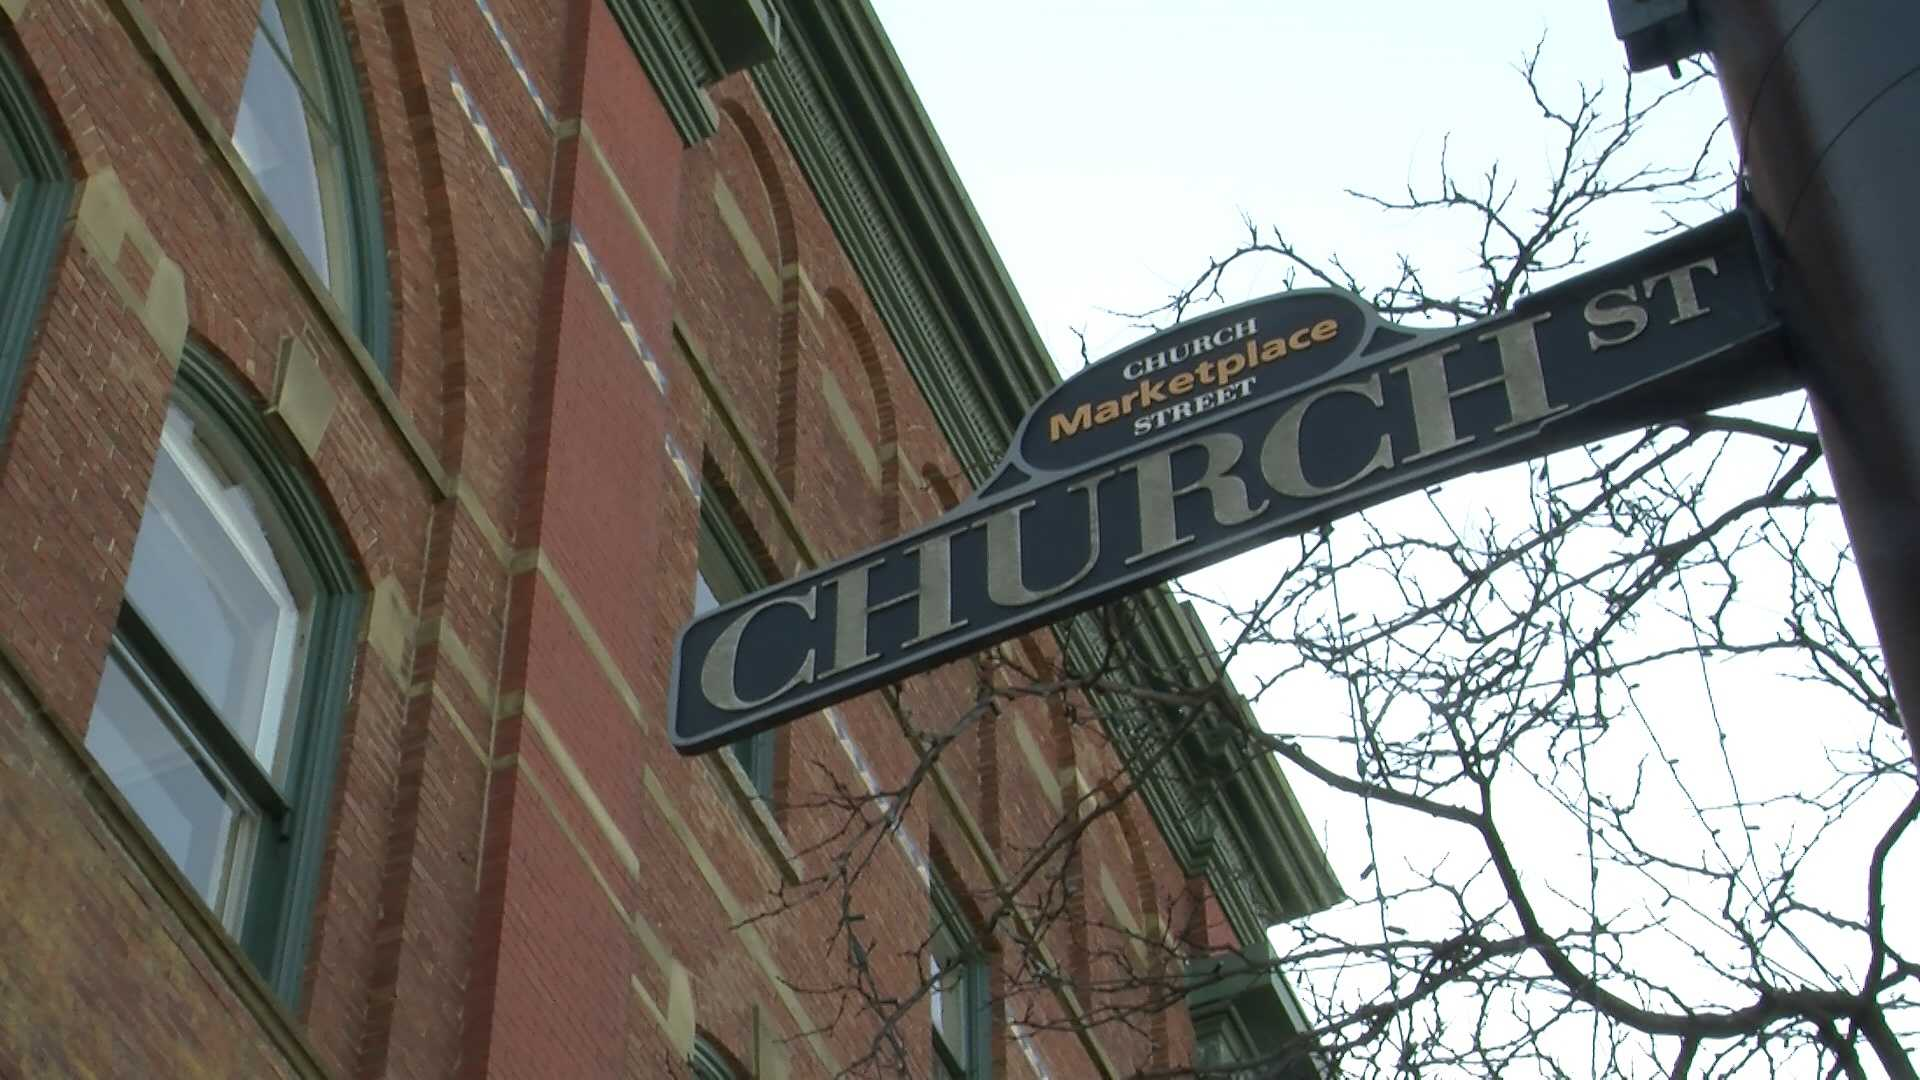 3-18-14 Church Street lawsuit goes to trial - img